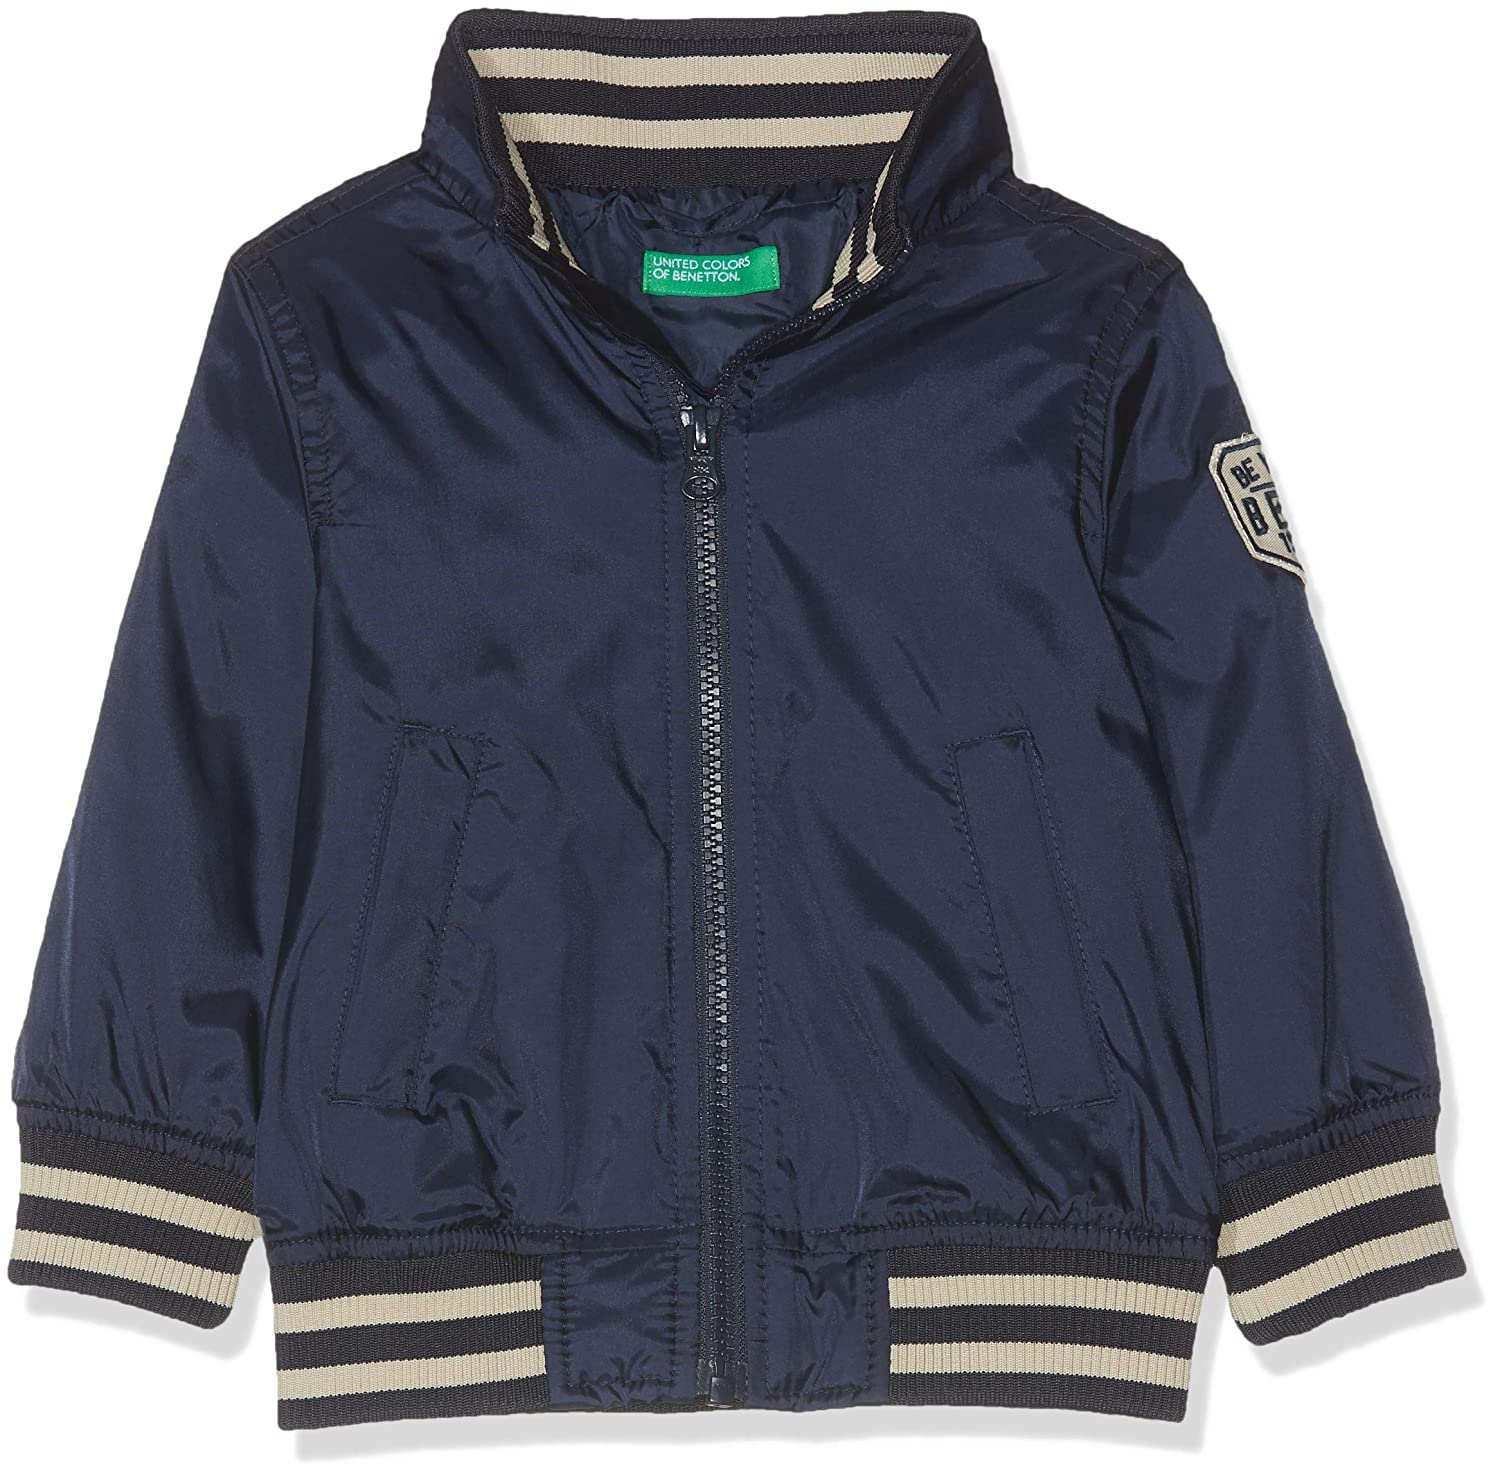 United Colors of Benetton Jacket, Abrigo para Niños: Amazon.es: Ropa y accesorios